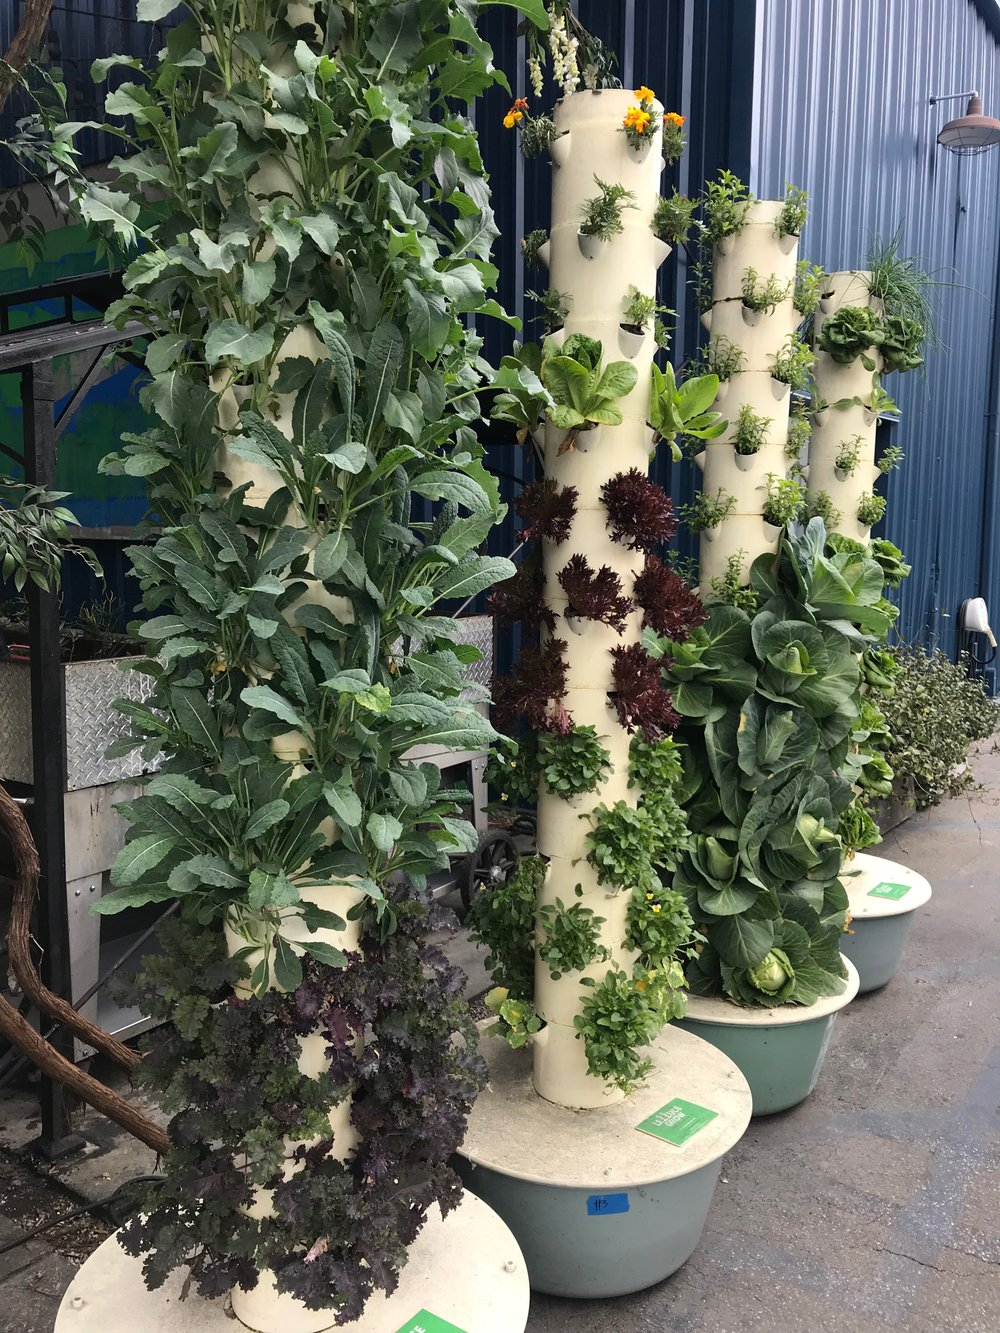 Hydroponics farms spotted in Los Angeles. Photo by Halley Sutton